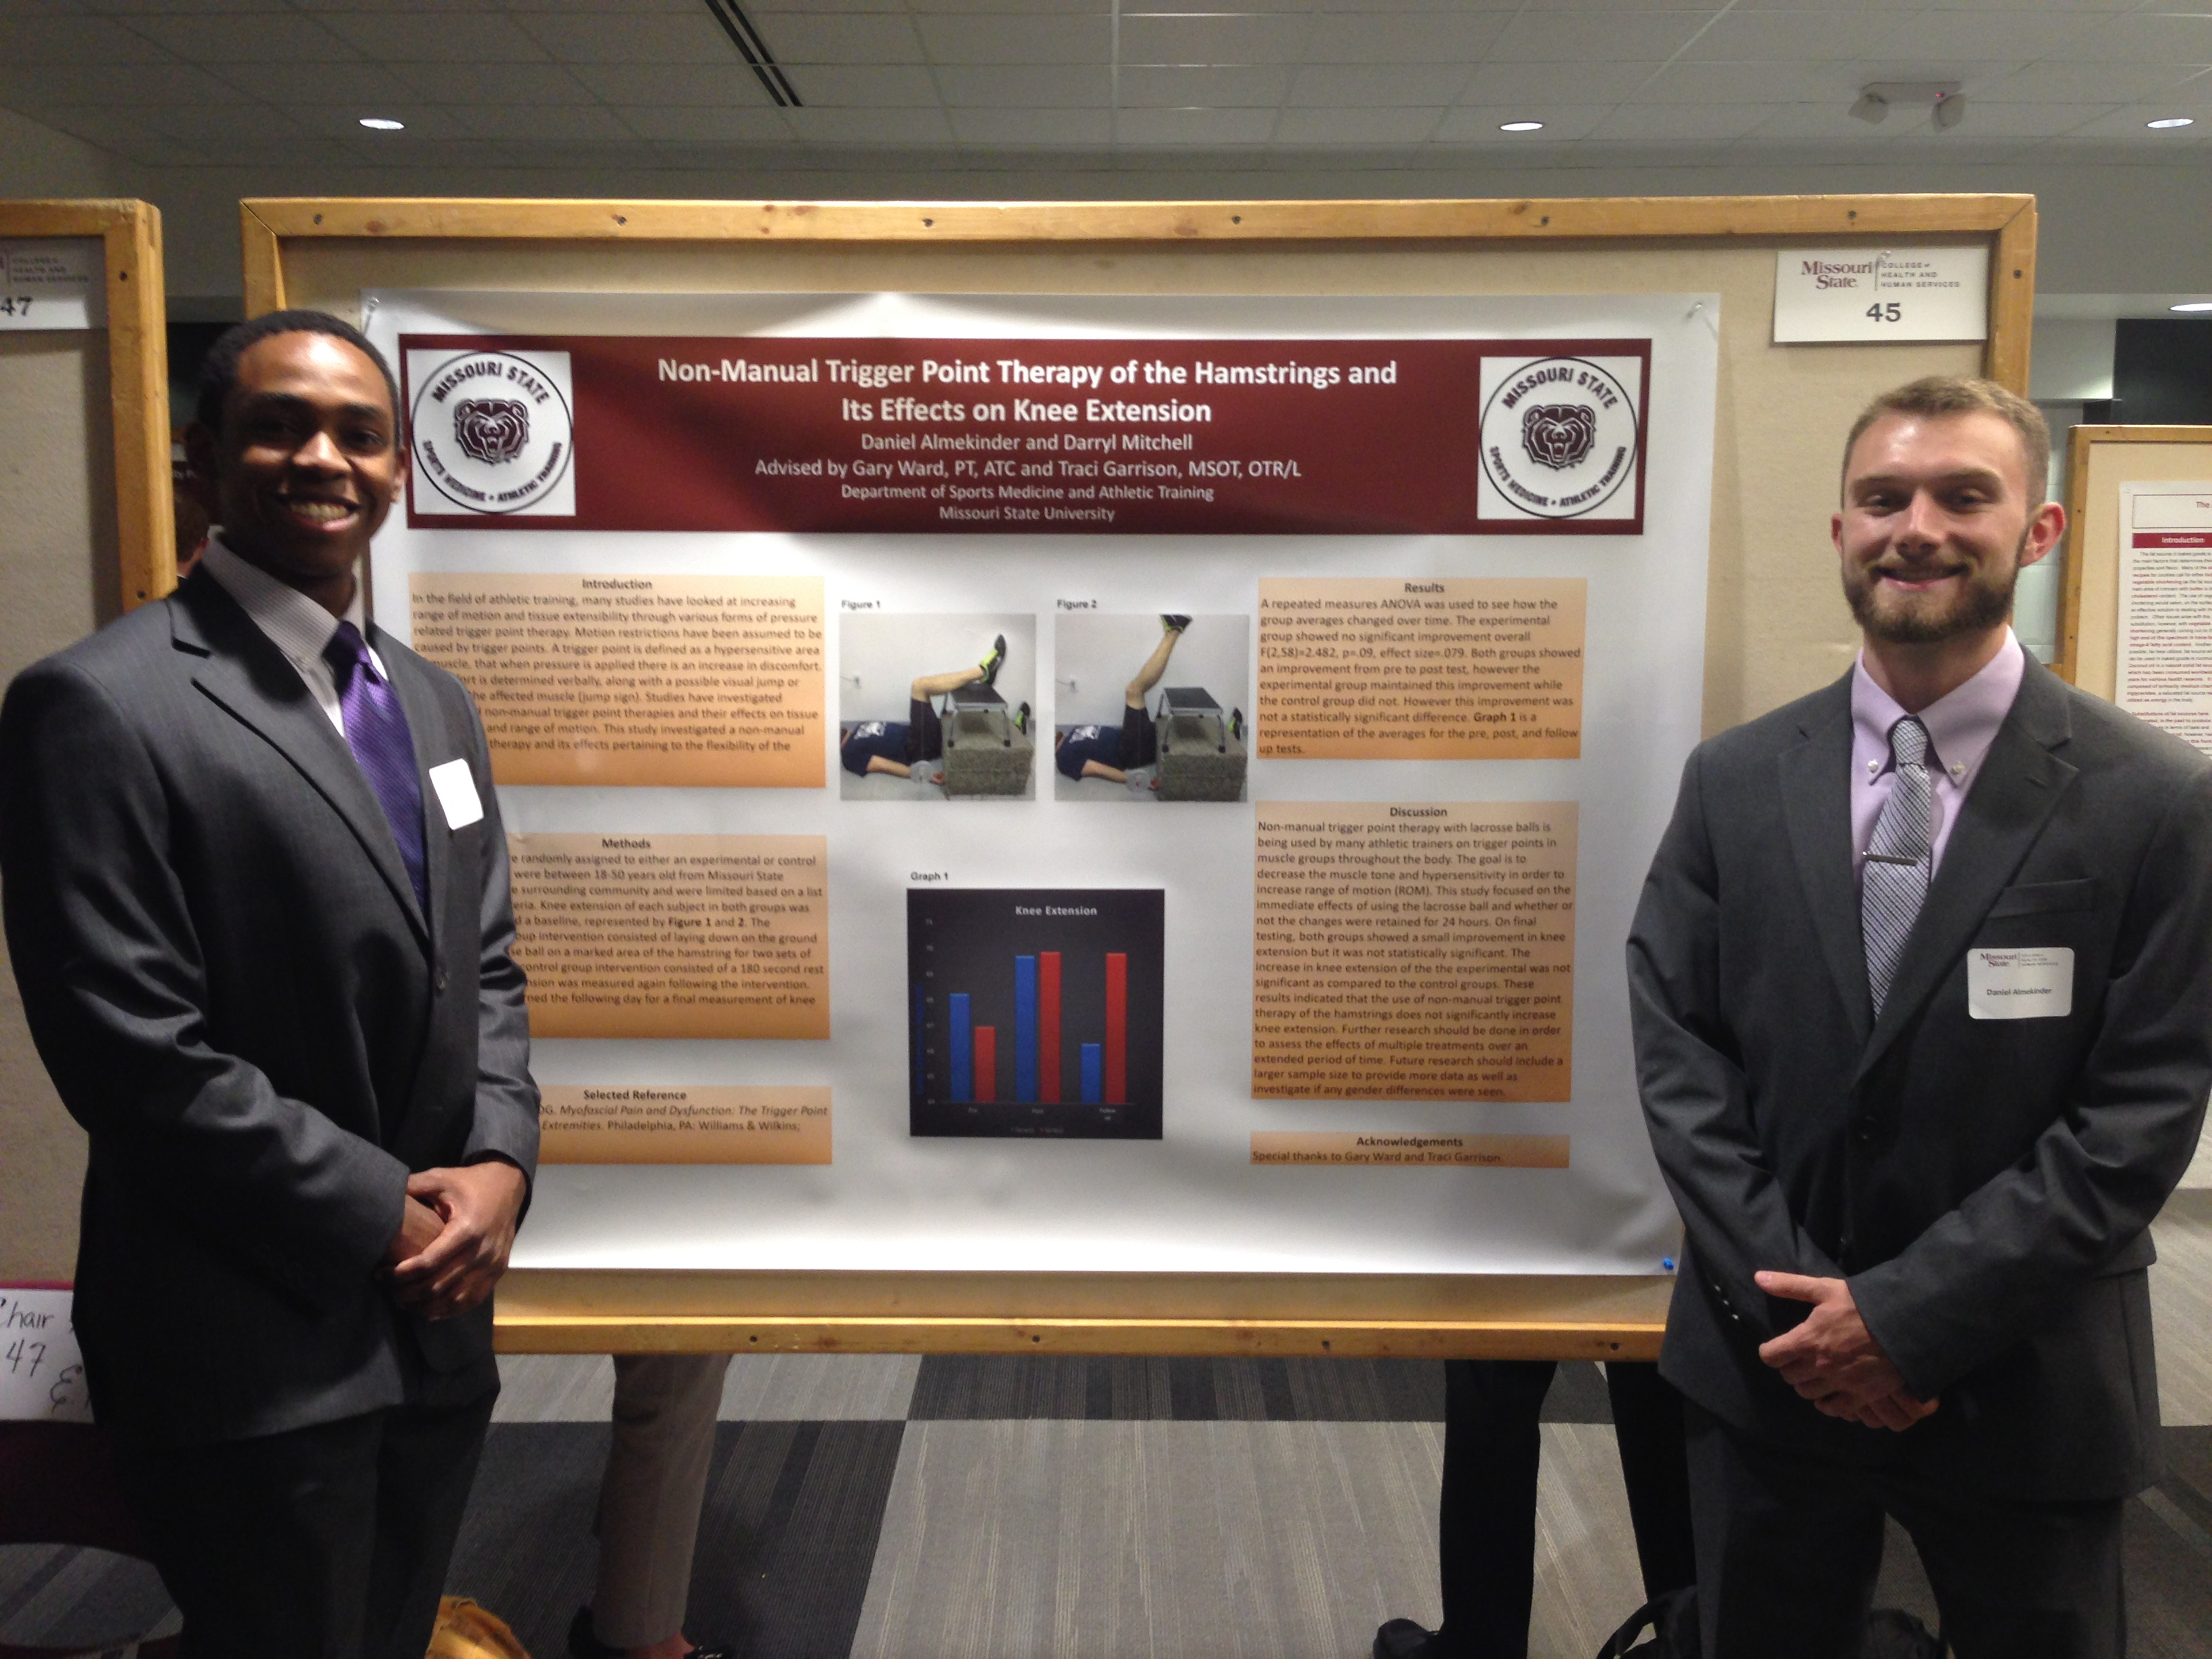 2015 CHHS Student Research Symposium